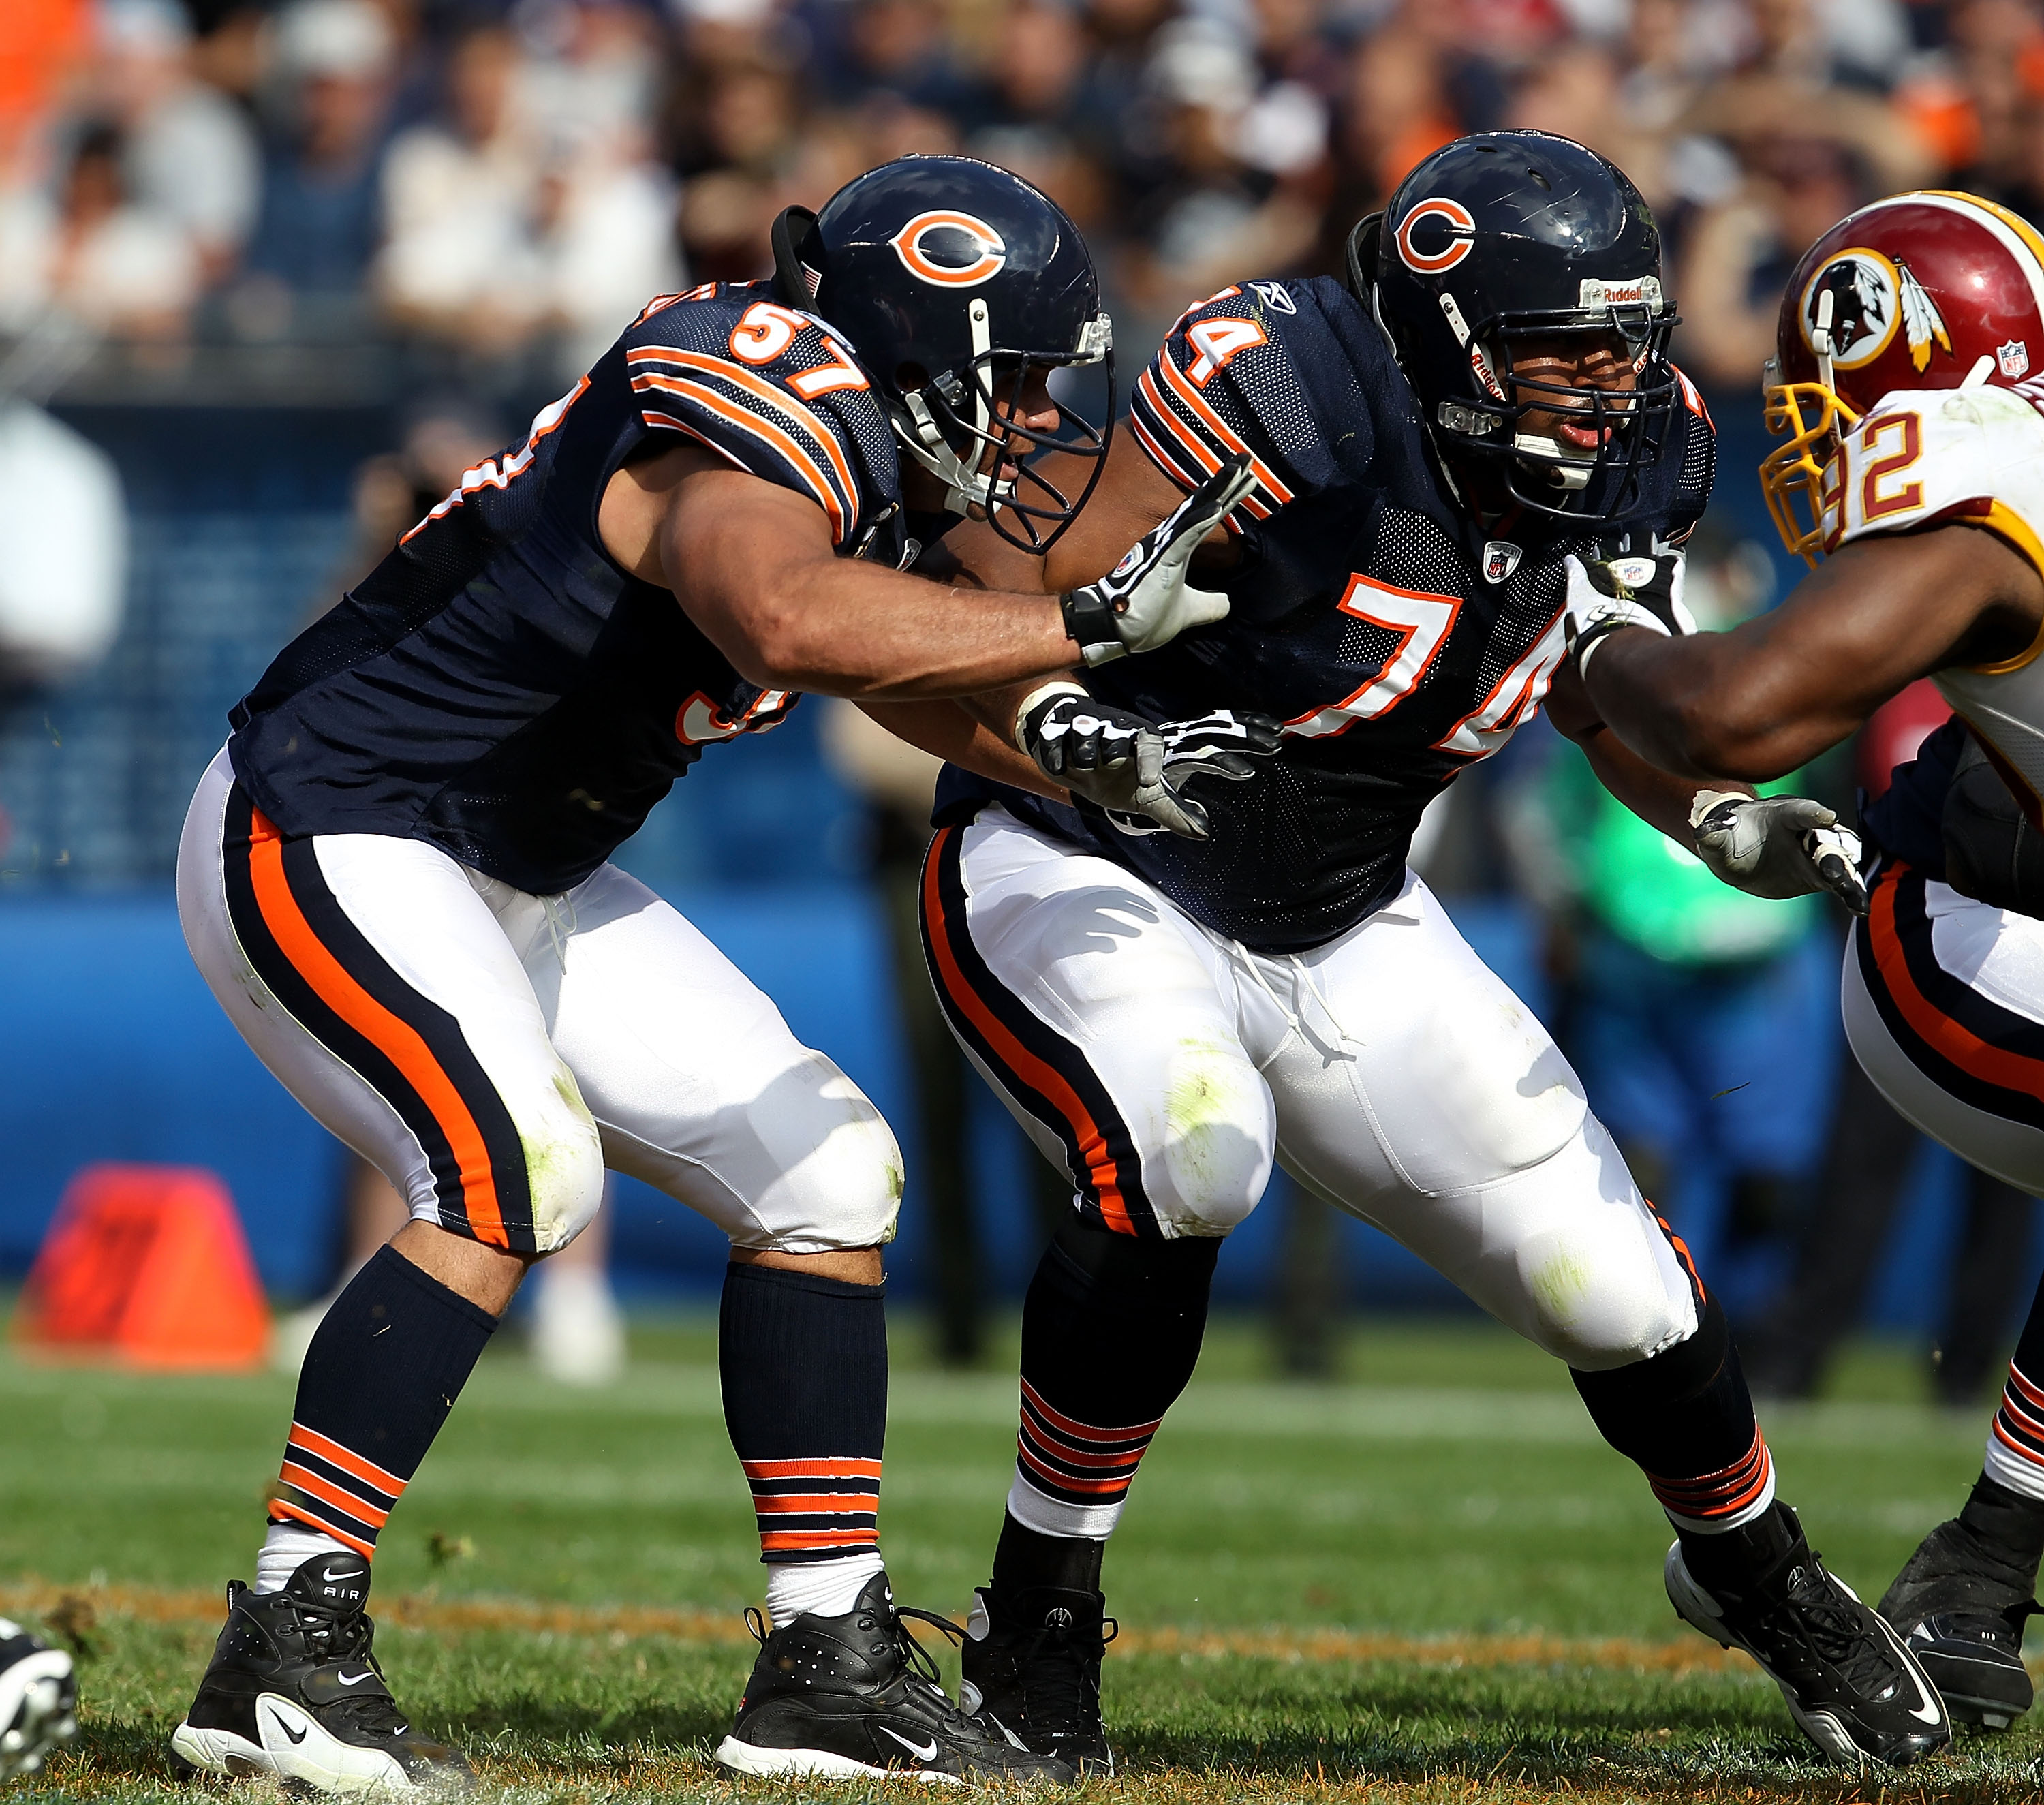 CHICAGO - OCTOBER 24: Olin Kreutz #57 and Chris Williams #74 of the Chicago Bears move to block against the Washington Redskins at Soldier Field on October 24, 2010 in Chicago, Illinois. The Redskins defeated the Bears 17-14. (Photo by Jonathan Daniel/Get